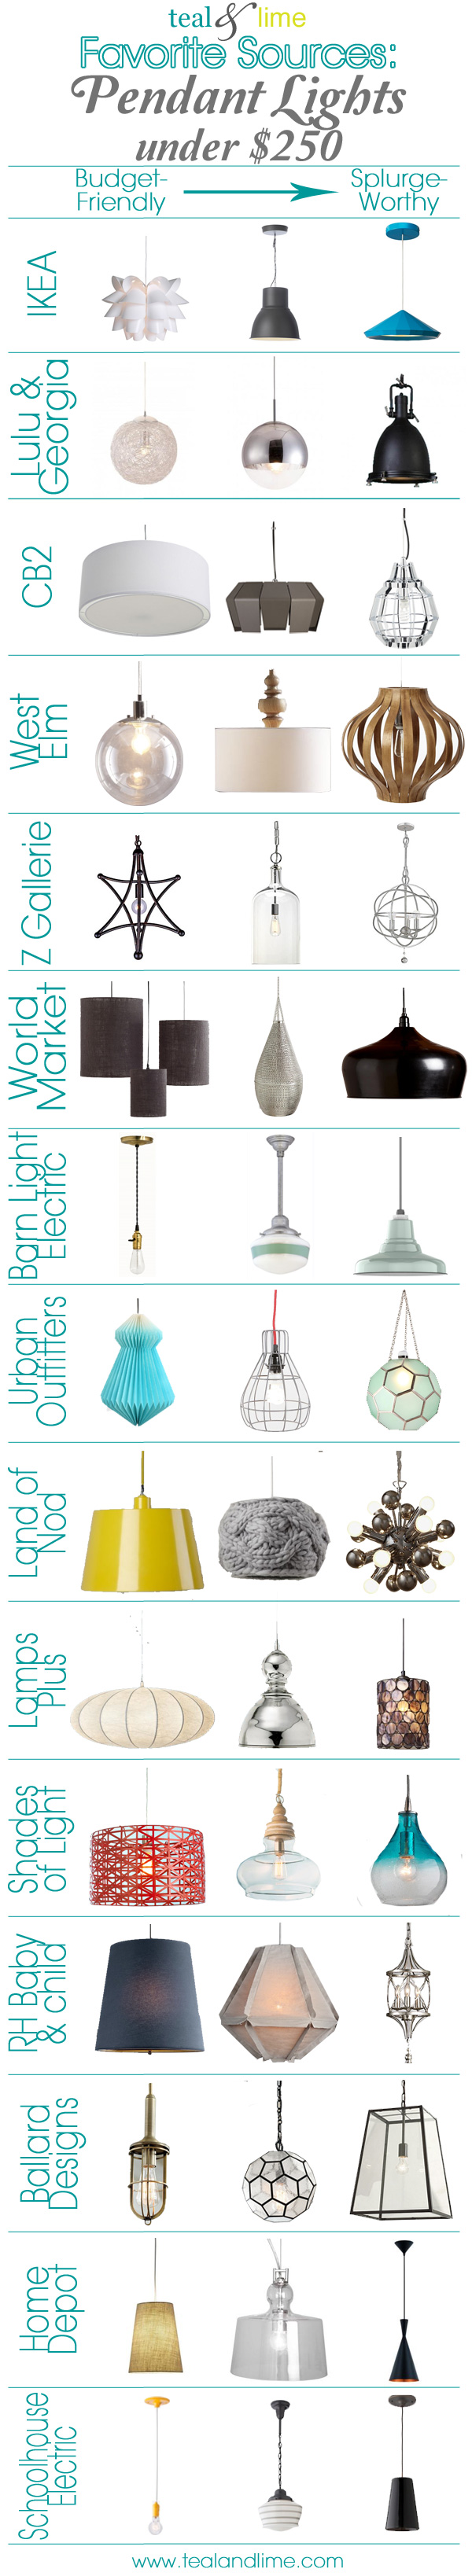 Favorite Sources Pendant Lights